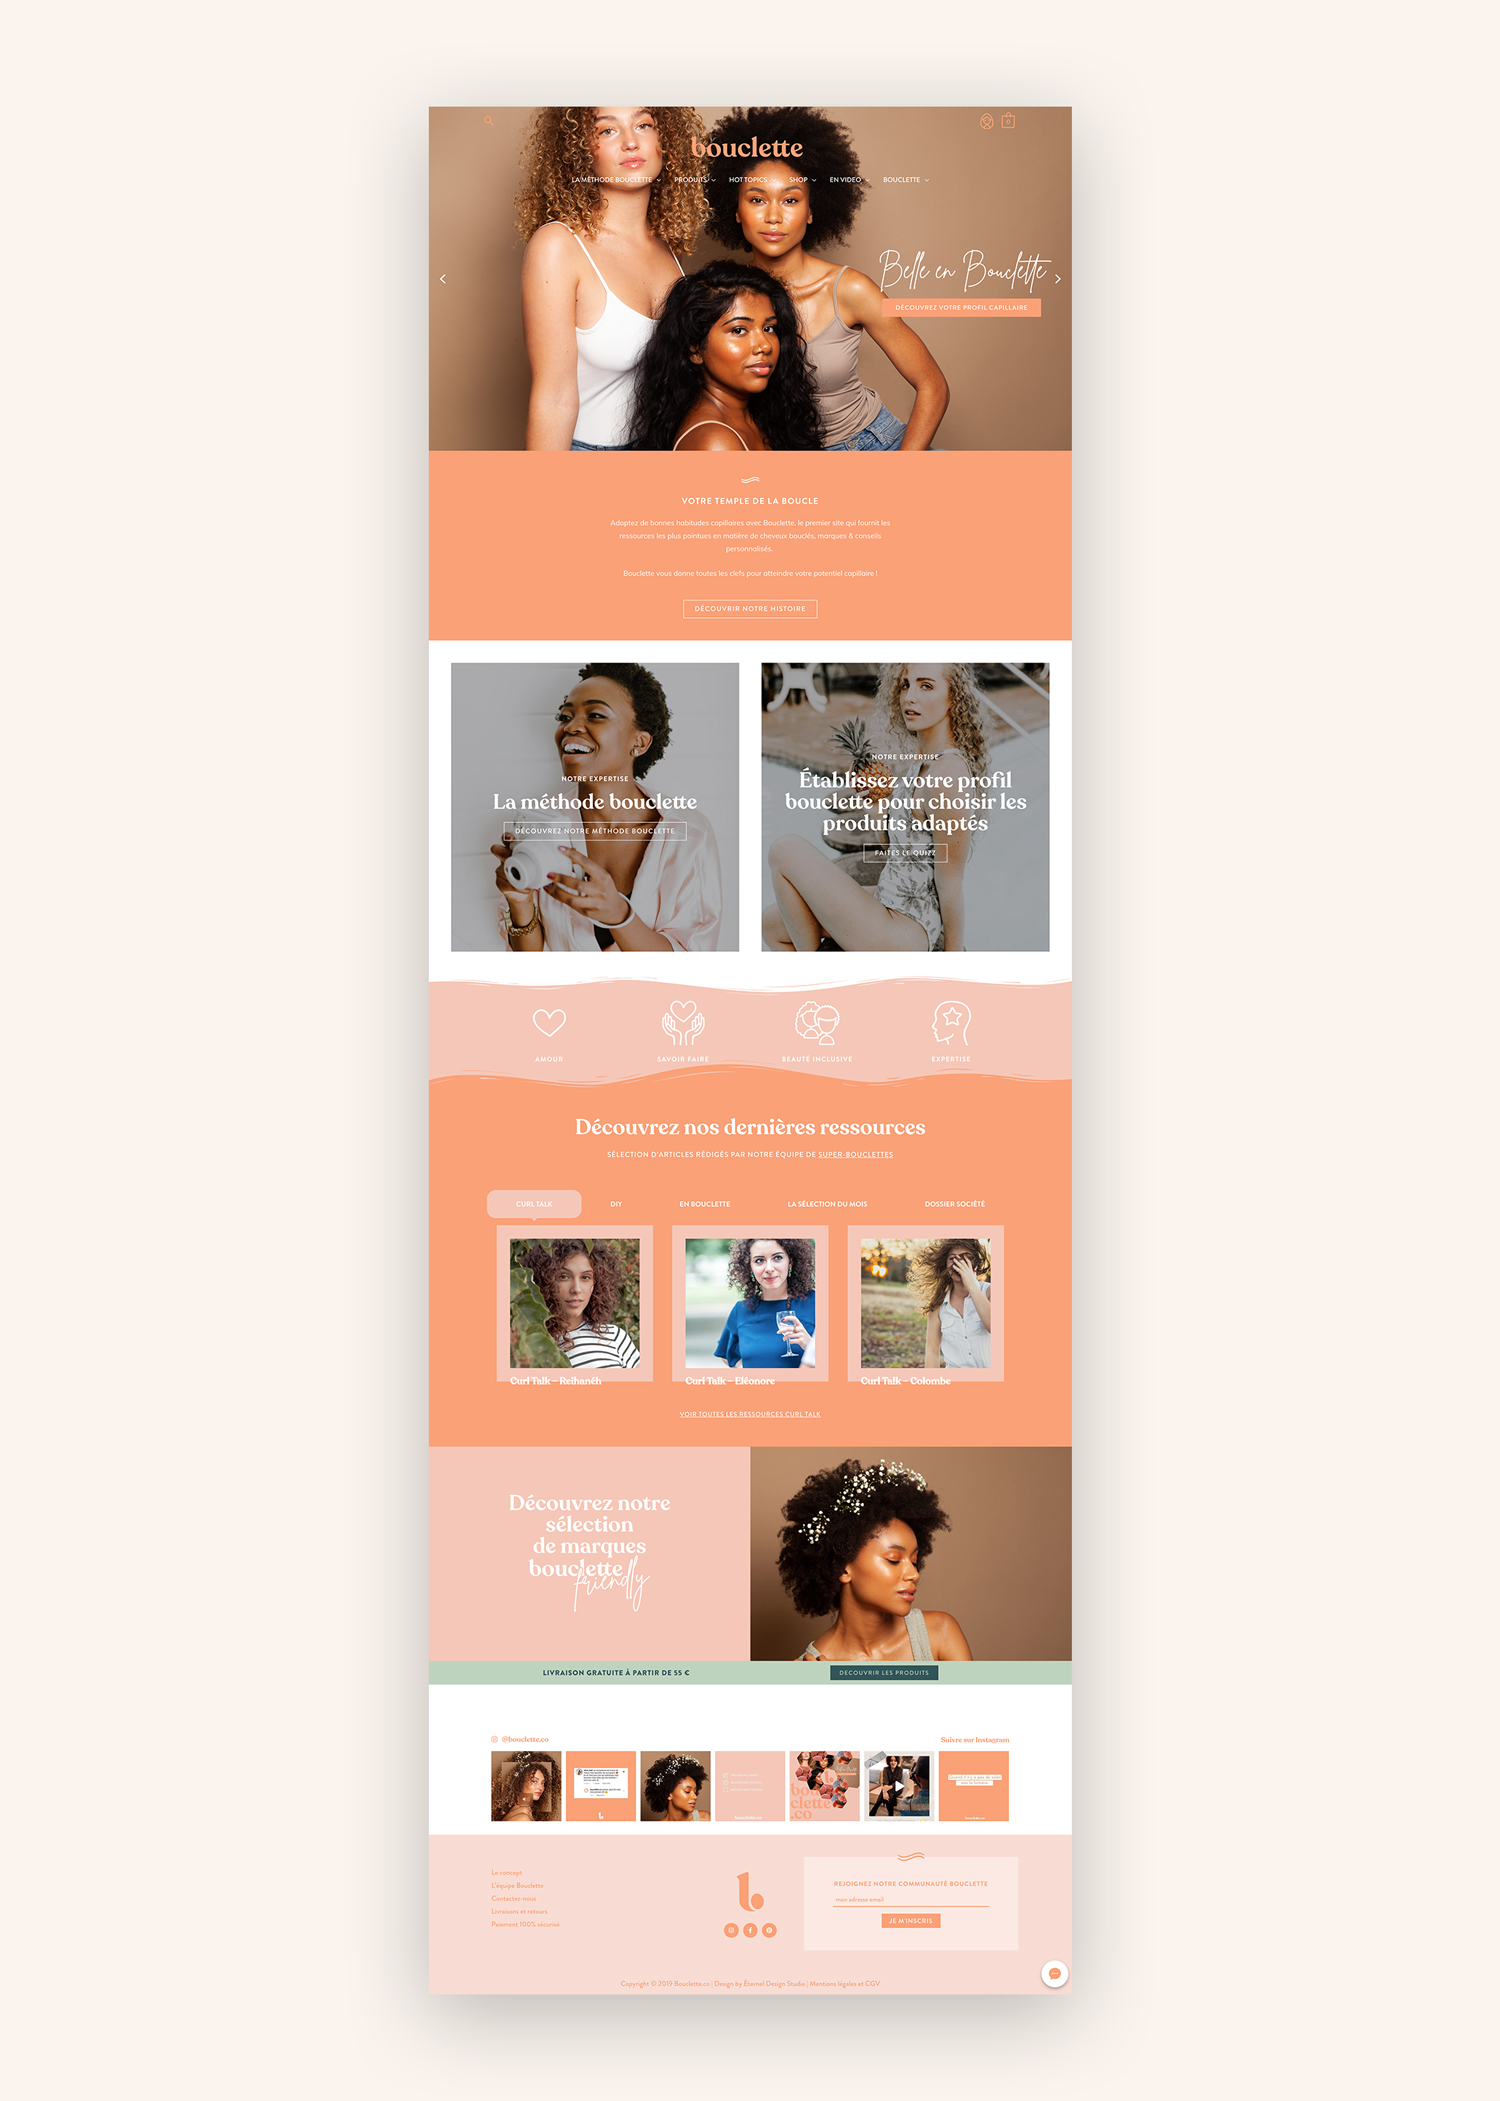 WordPress website design for haircare brand Bouclette by Éternel Design Studio